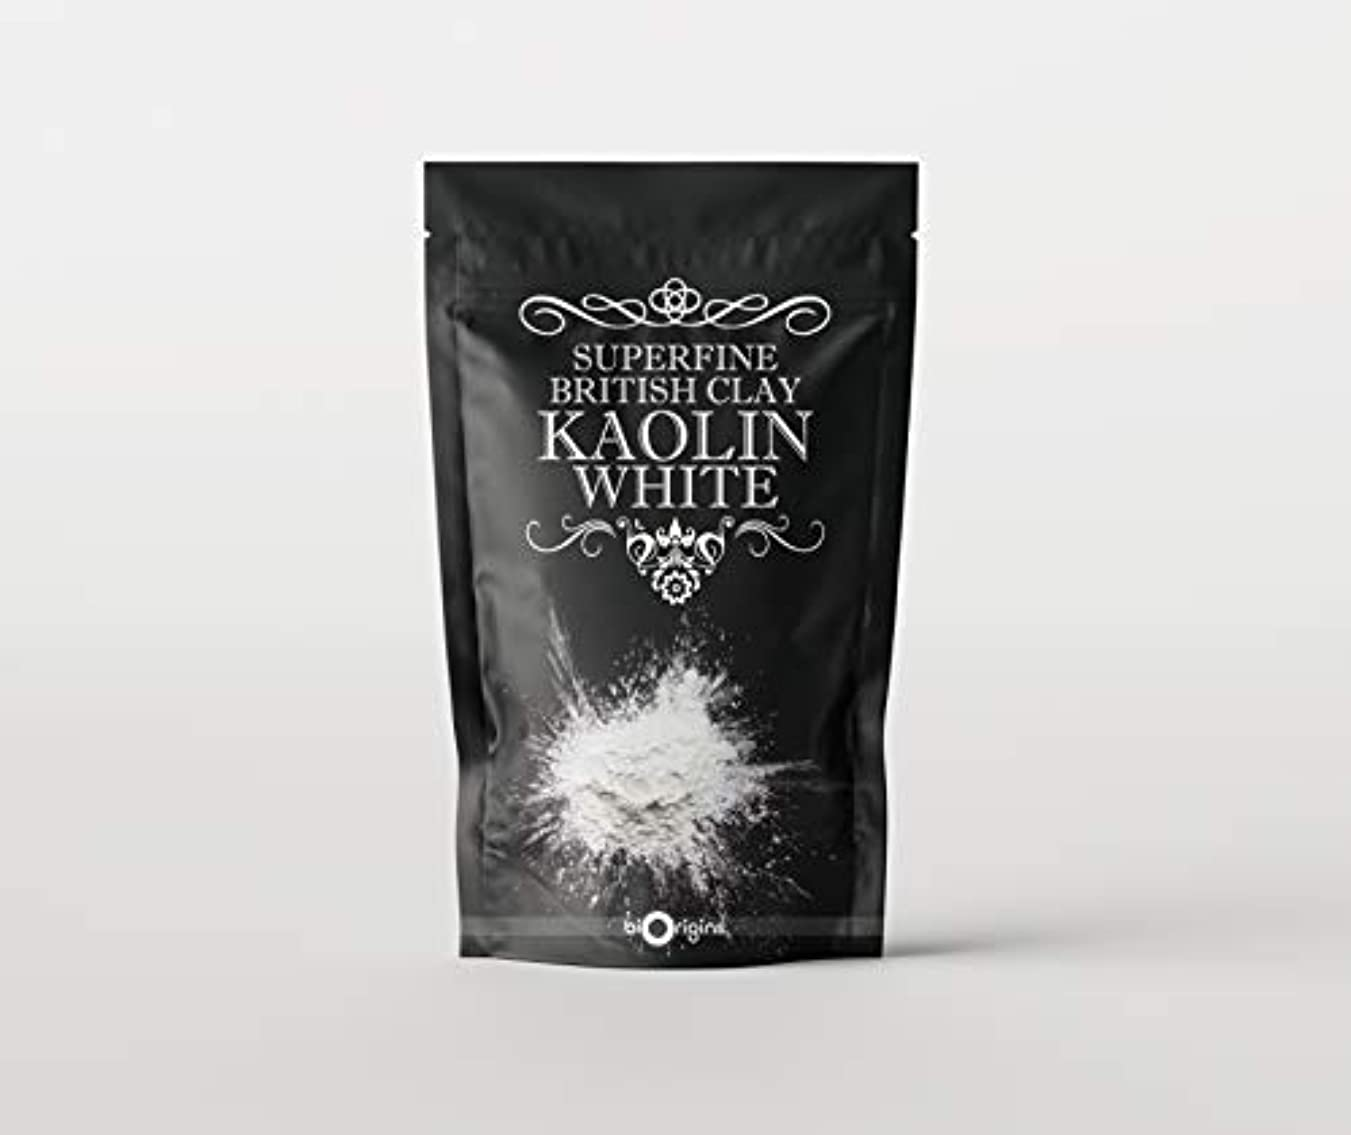 スペイン入り口商品Kaolin White Superfine British Clay - 500g